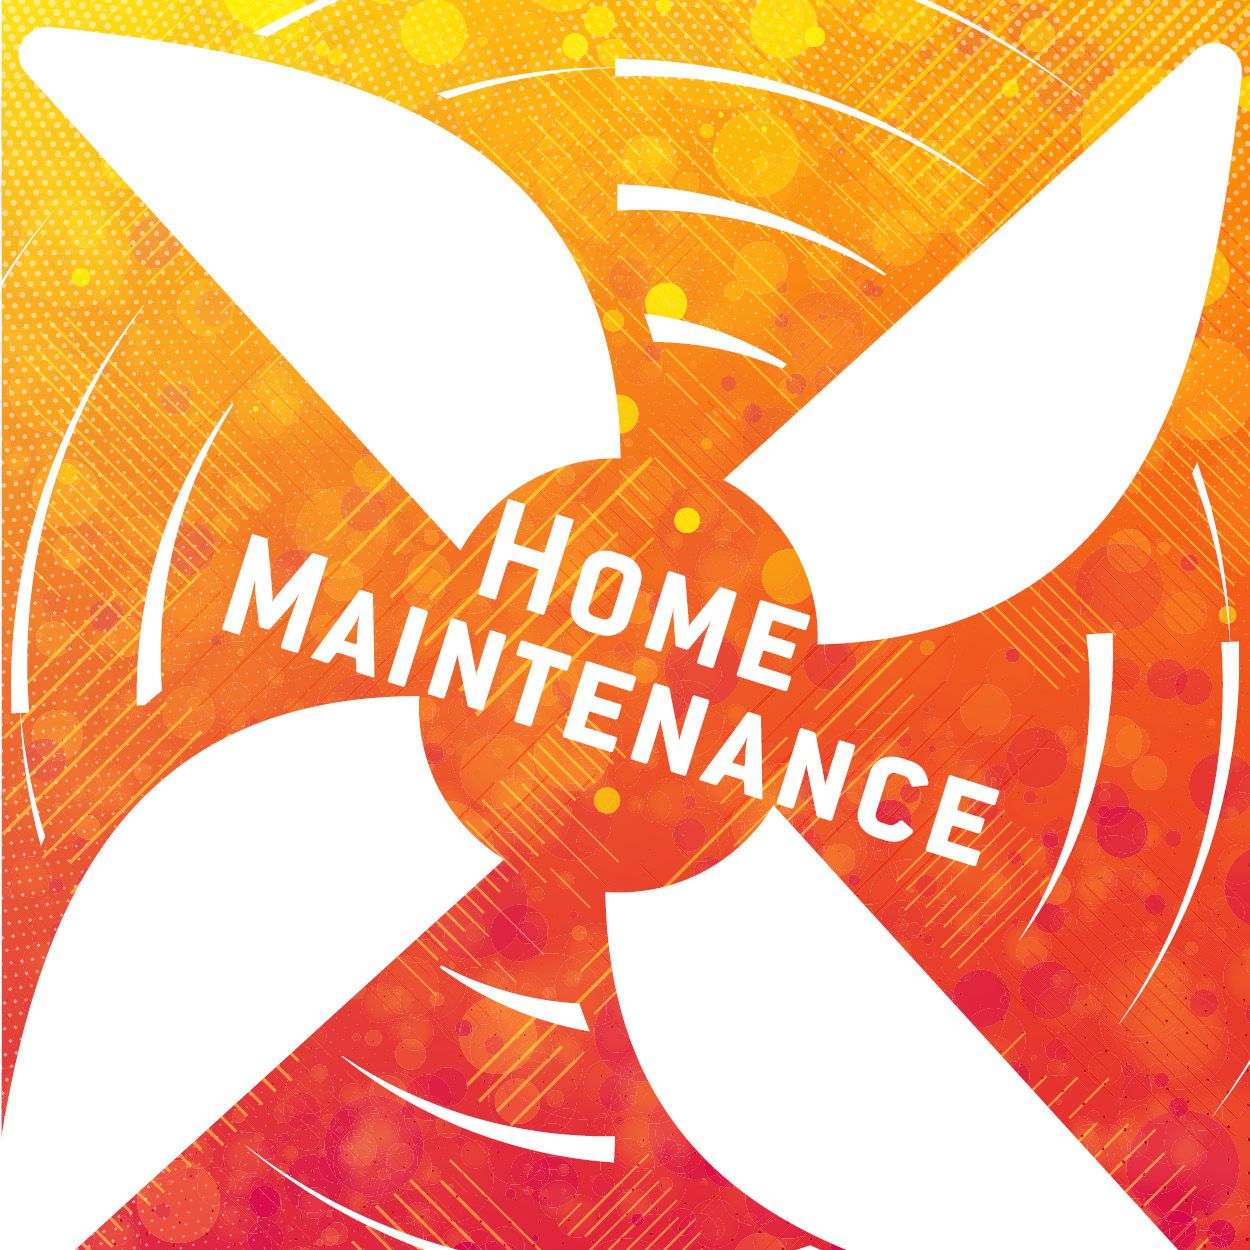 Pin by One Hour Heating & Air Conditi on Home Maintenance